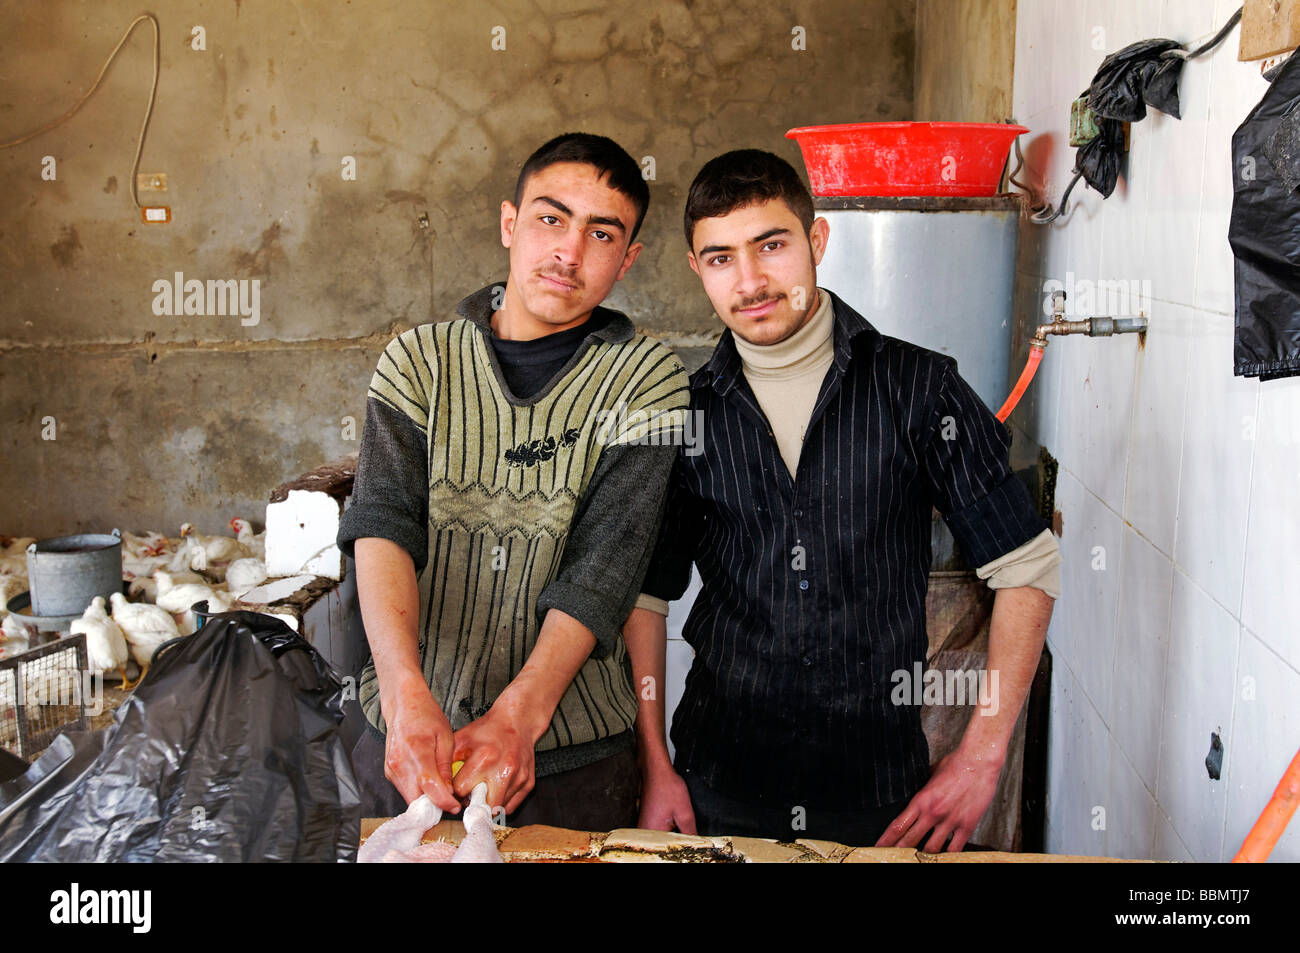 Poultry traders in Aleppo, Syria, Asia - Stock Image